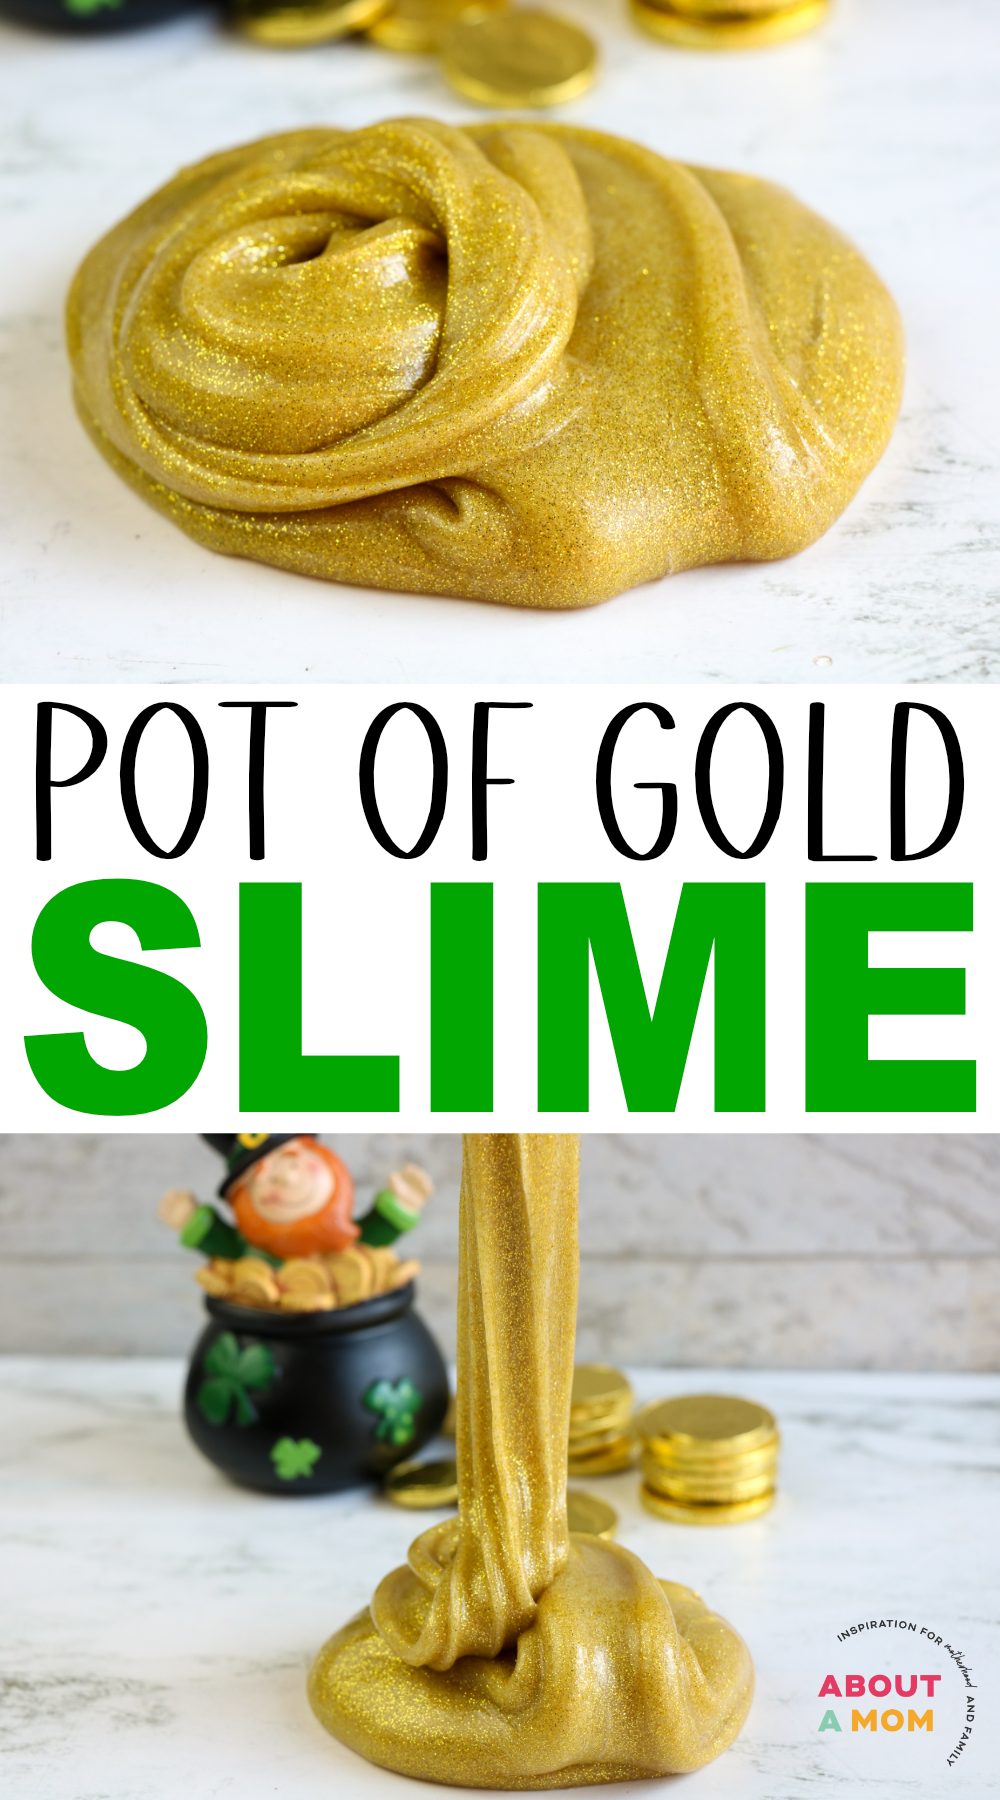 Such a fun St. Patrick's Day activity for kids. St. Patrick's Day activity for kids. Make this pot of gold slime recipe for your children or students to enjoy on St. Patrick's day! Metallic gold slime is so cool!